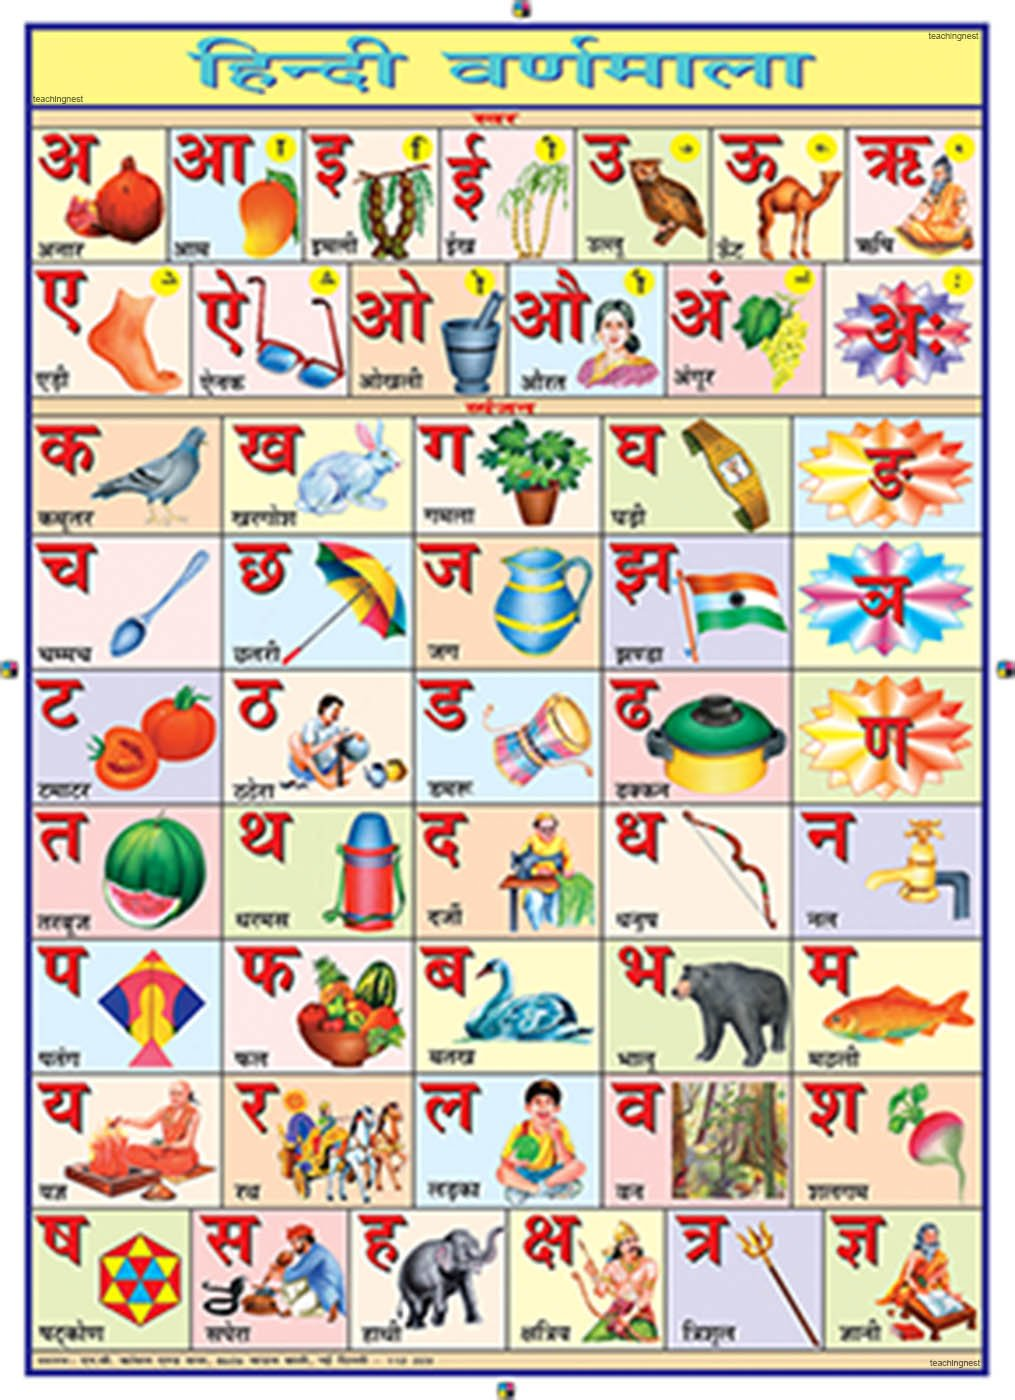 Buy Hindi Alphabet Chart (70x100cm) Book Online at Low Prices in ...